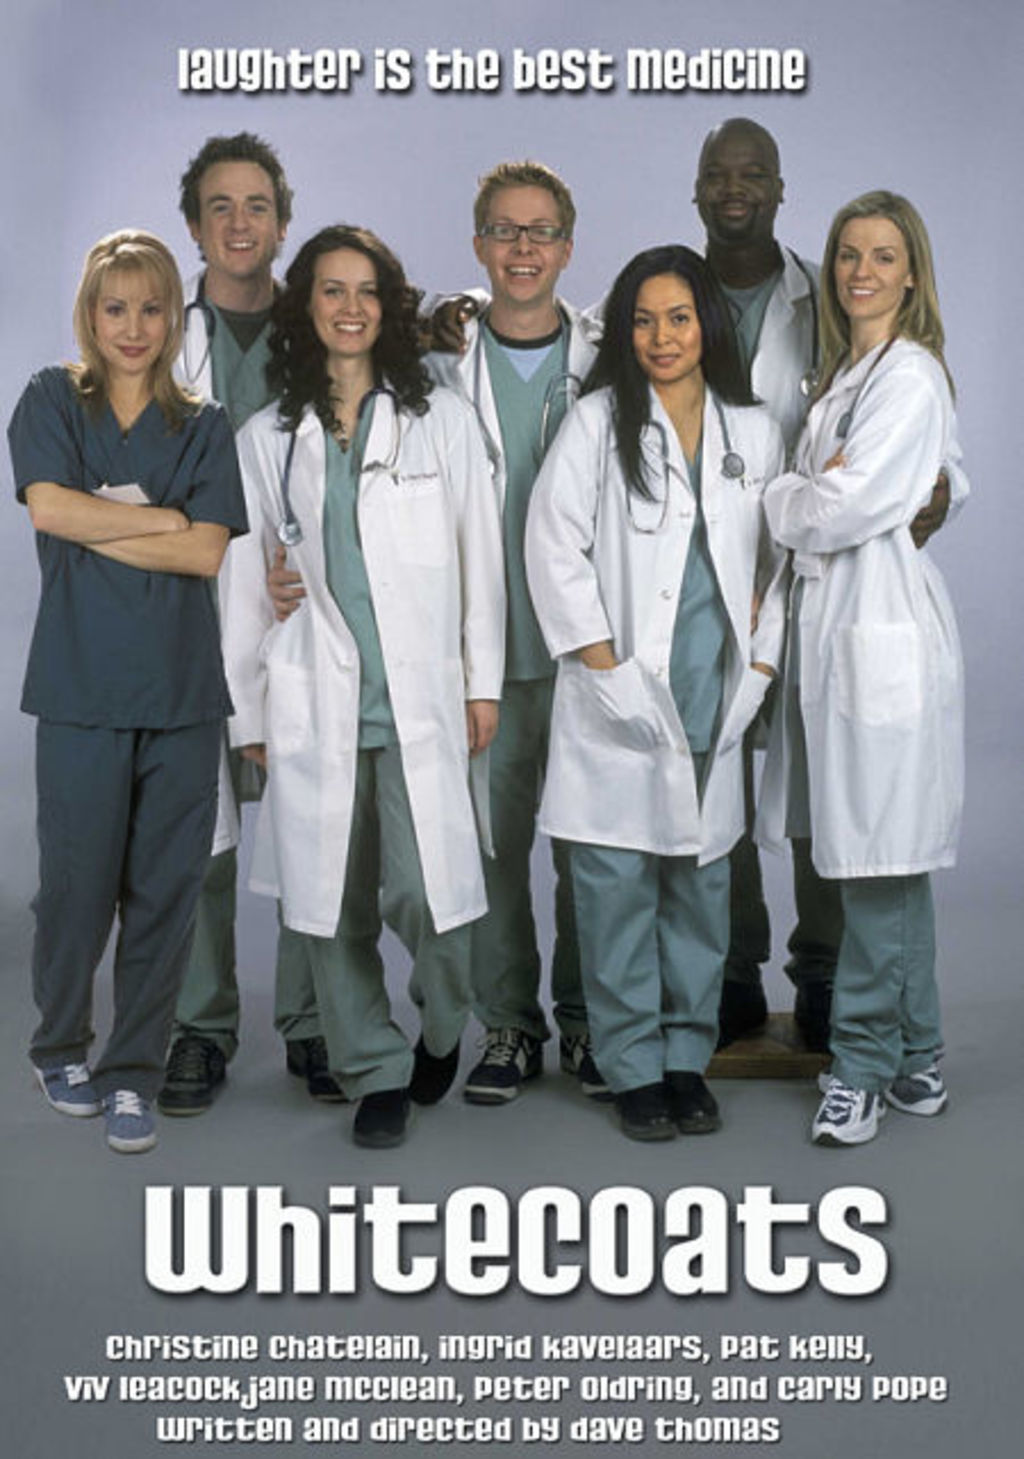 Watch Whitecoats on Netflix Today! | NetflixMovies.com